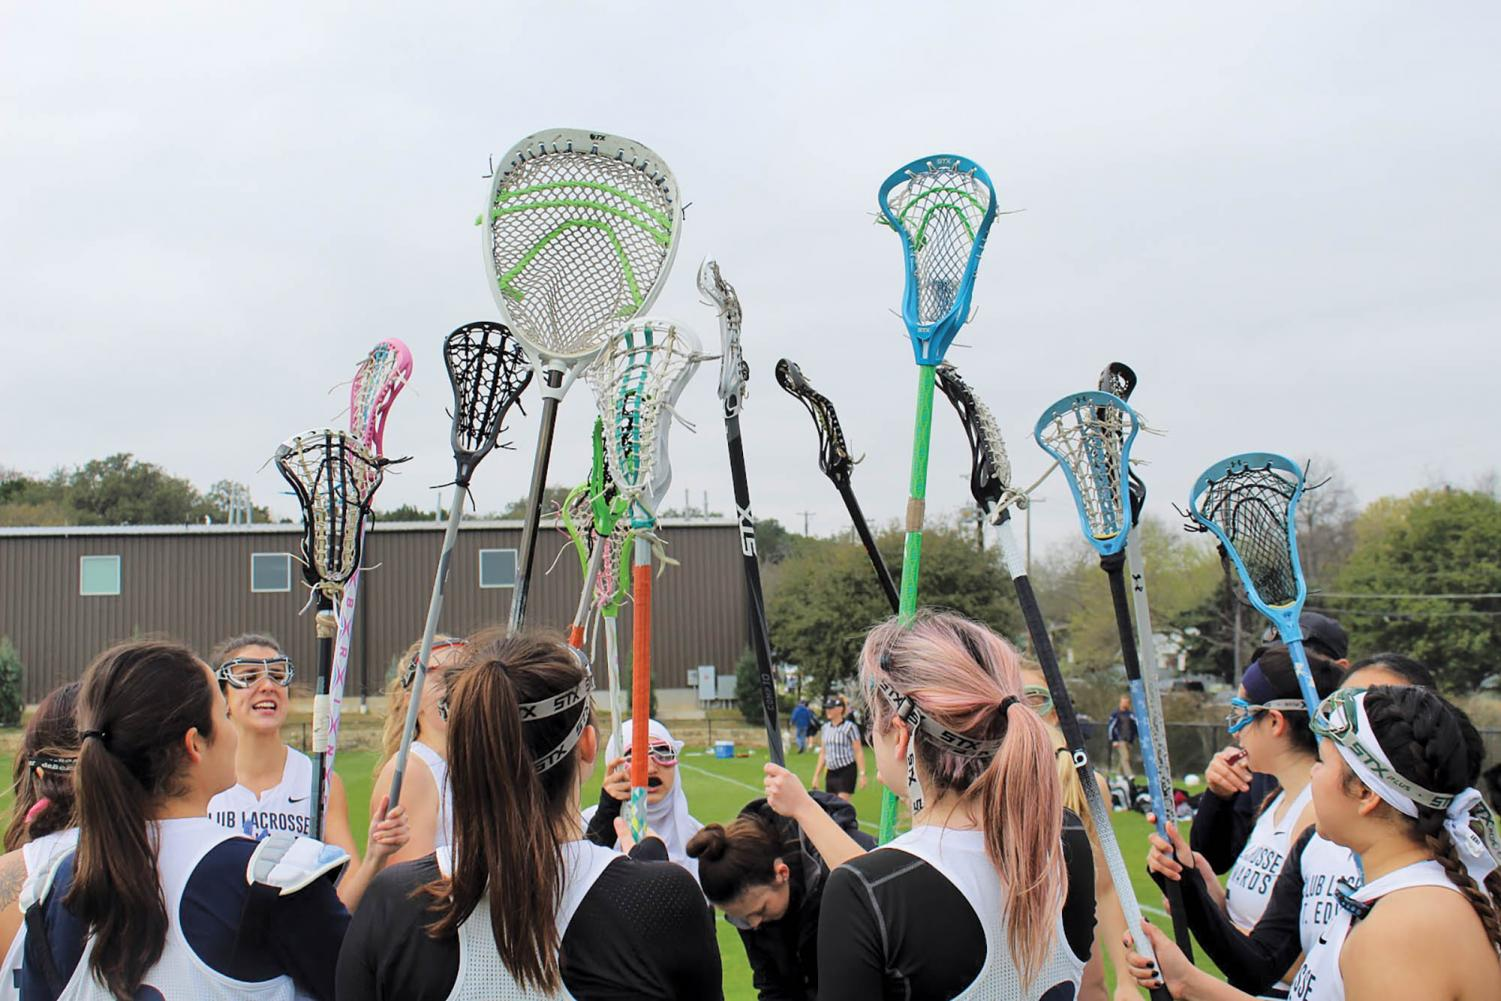 Huddling up after a productive team practice, the women's lacrosse team prepares to improve their skillsets in preparation for upcoming tournaments.